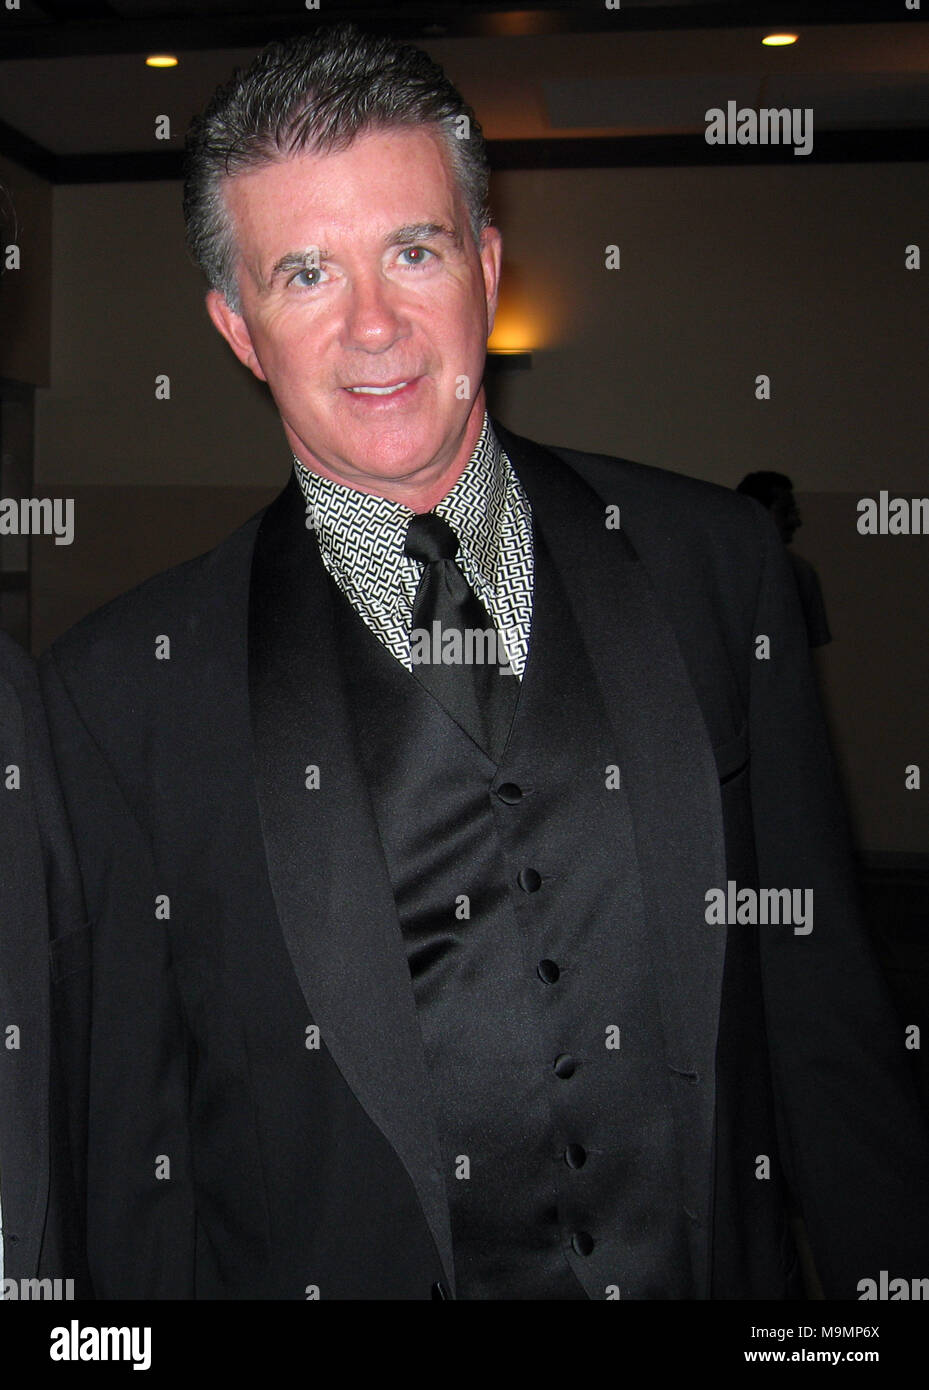 Boca Raton, FL - DECEMBER 03, 2005 : Alan Thicke at the Boca Resort.  People; Alan Thicke   Must call if interested  Michael Storms Storms Media Group 305-632-3400 MikeStorm@aol.com - Stock Image